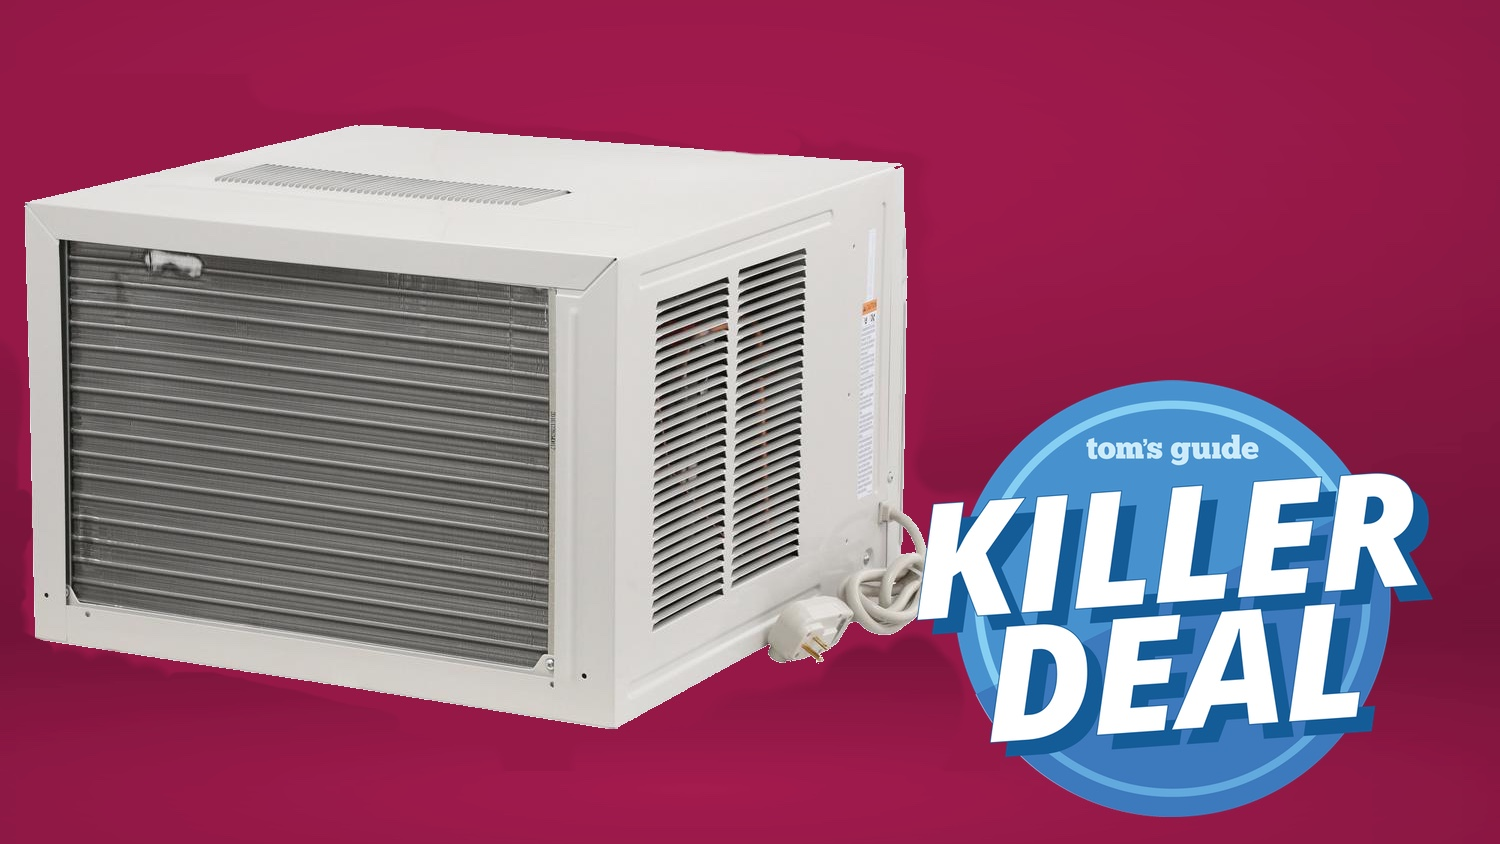 Summer Savings Home Depot Memorial Day Sale Has Hot Price On Ge Air Conditioner Tom S Guide